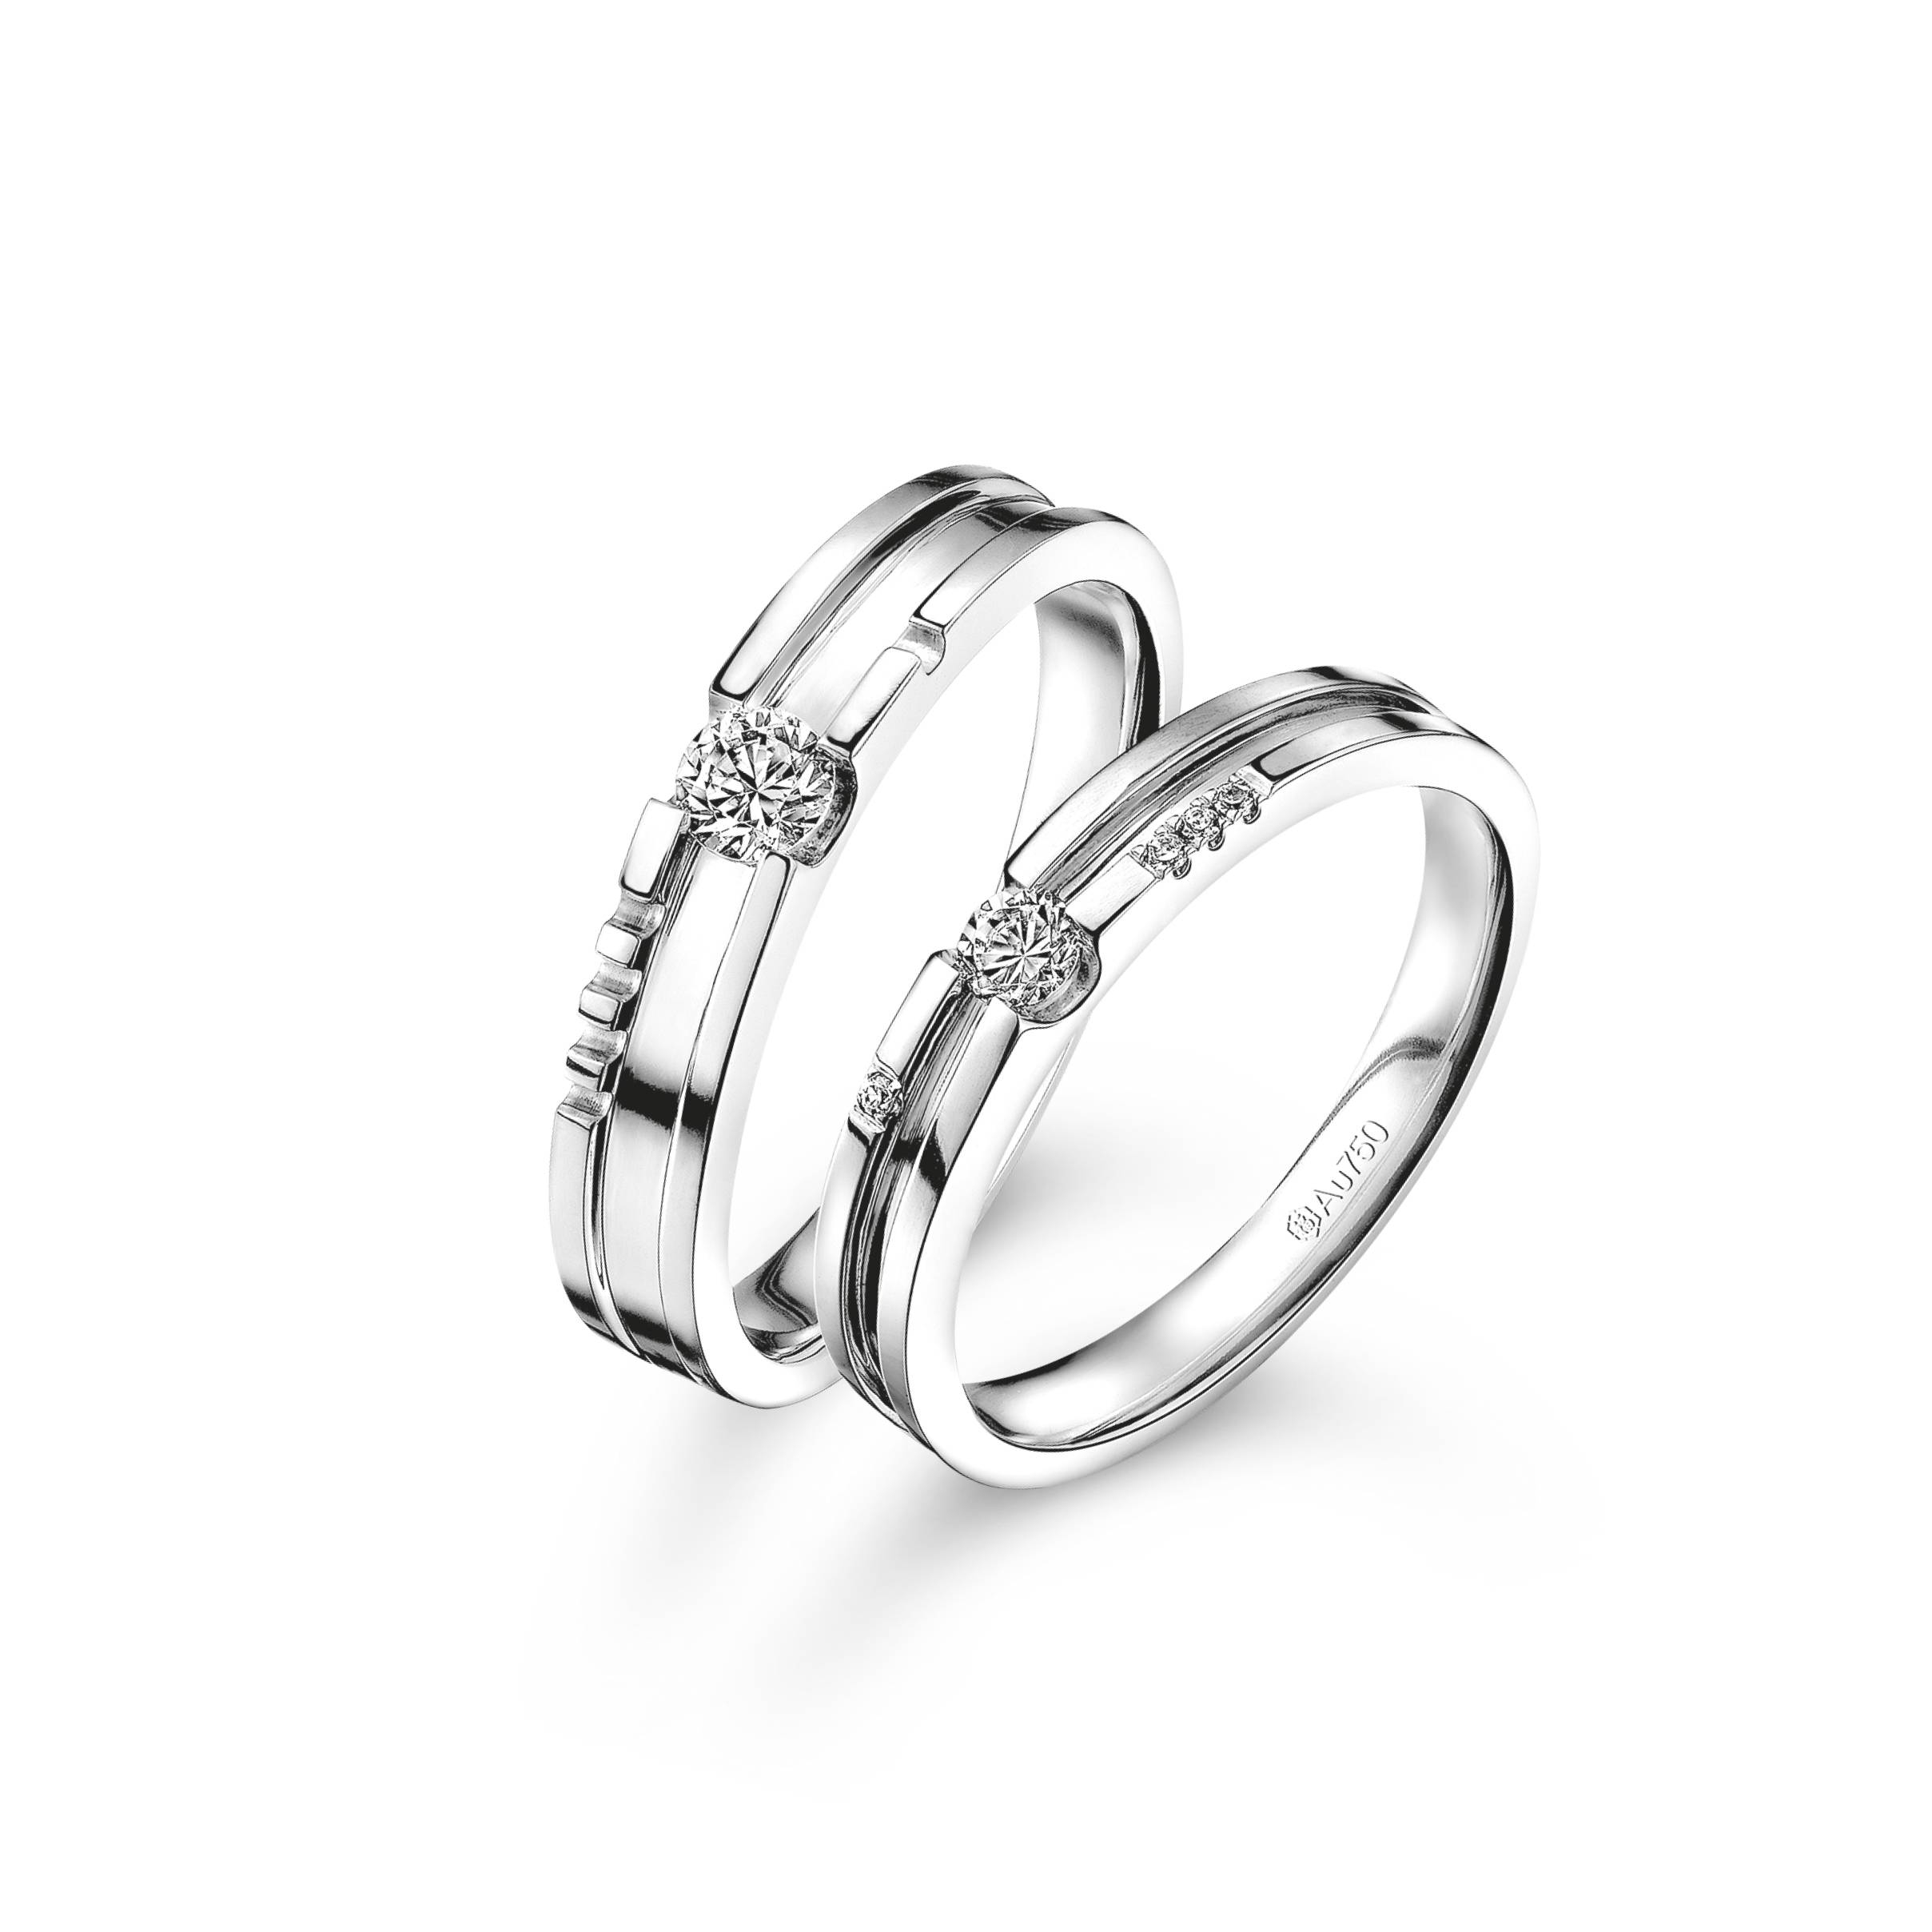 wedding kicle us ideas matching rings kmart nice ring the jewellery of lovely pair bands embellishment